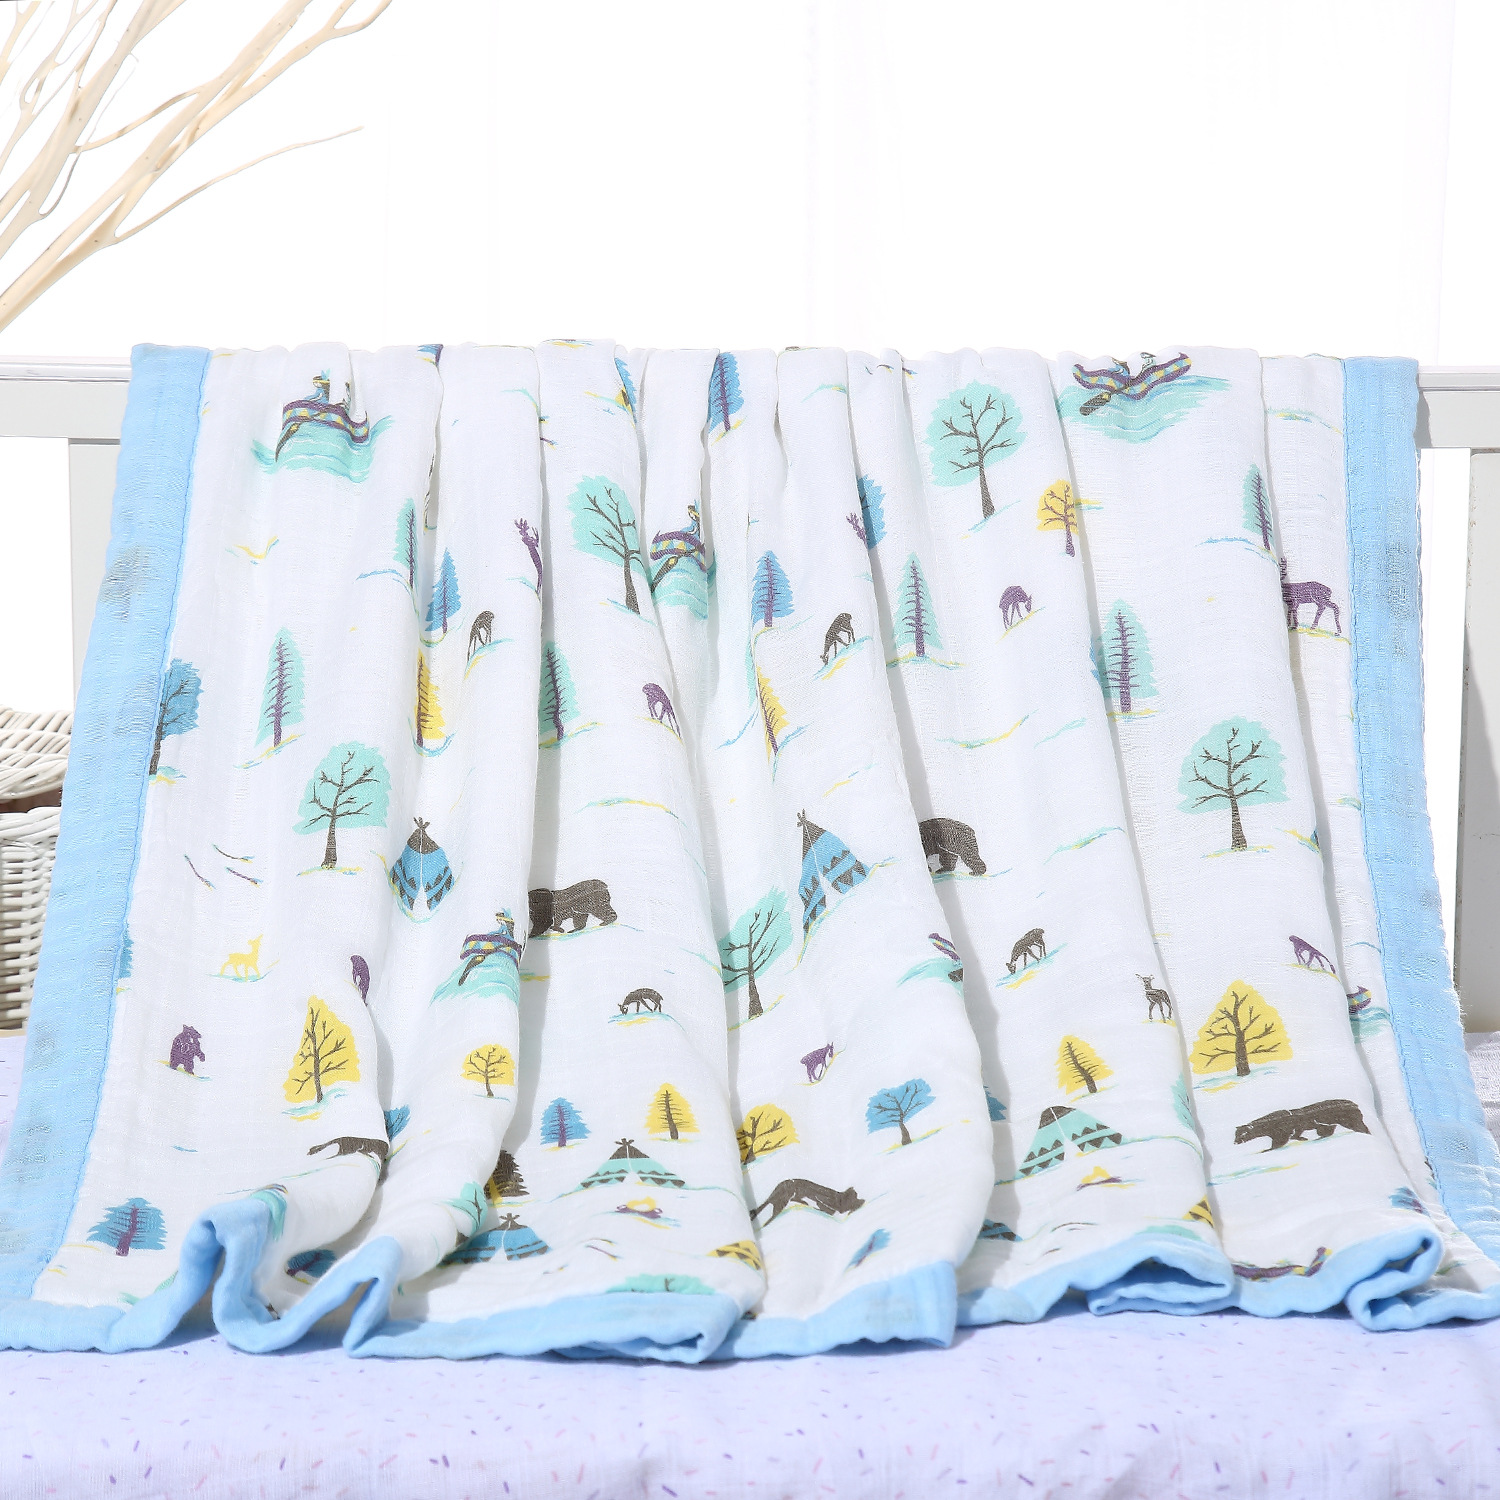 Cotton Newborn Blanket Swaddle Sleeping Bag Baby Swaddle blanket  Animals Covered 8layer Muslin Gauze Infant Muslin Washcloths<br>